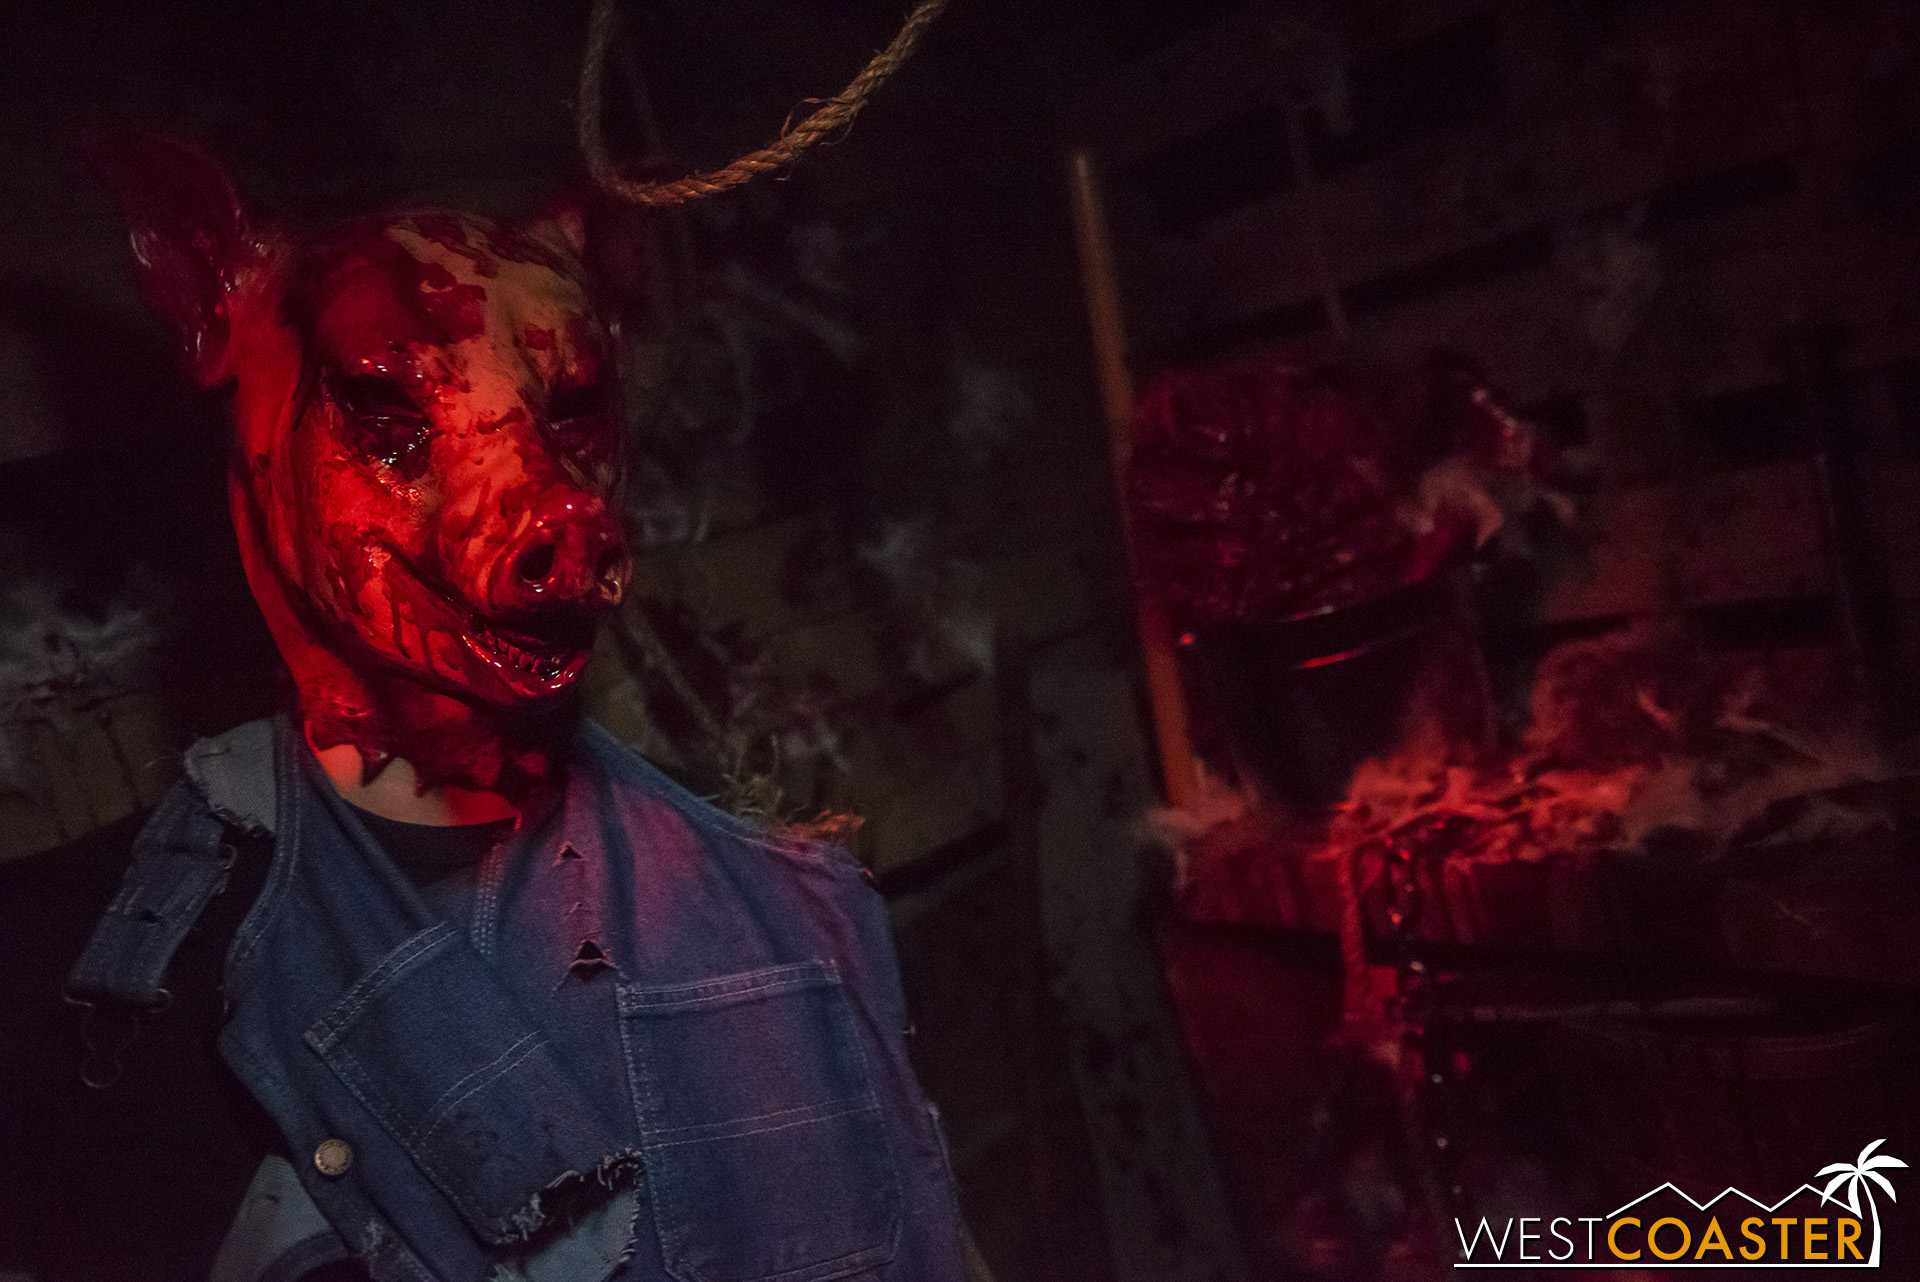 There is plenty of blood but little outright gore in this year's MHP haunted house.